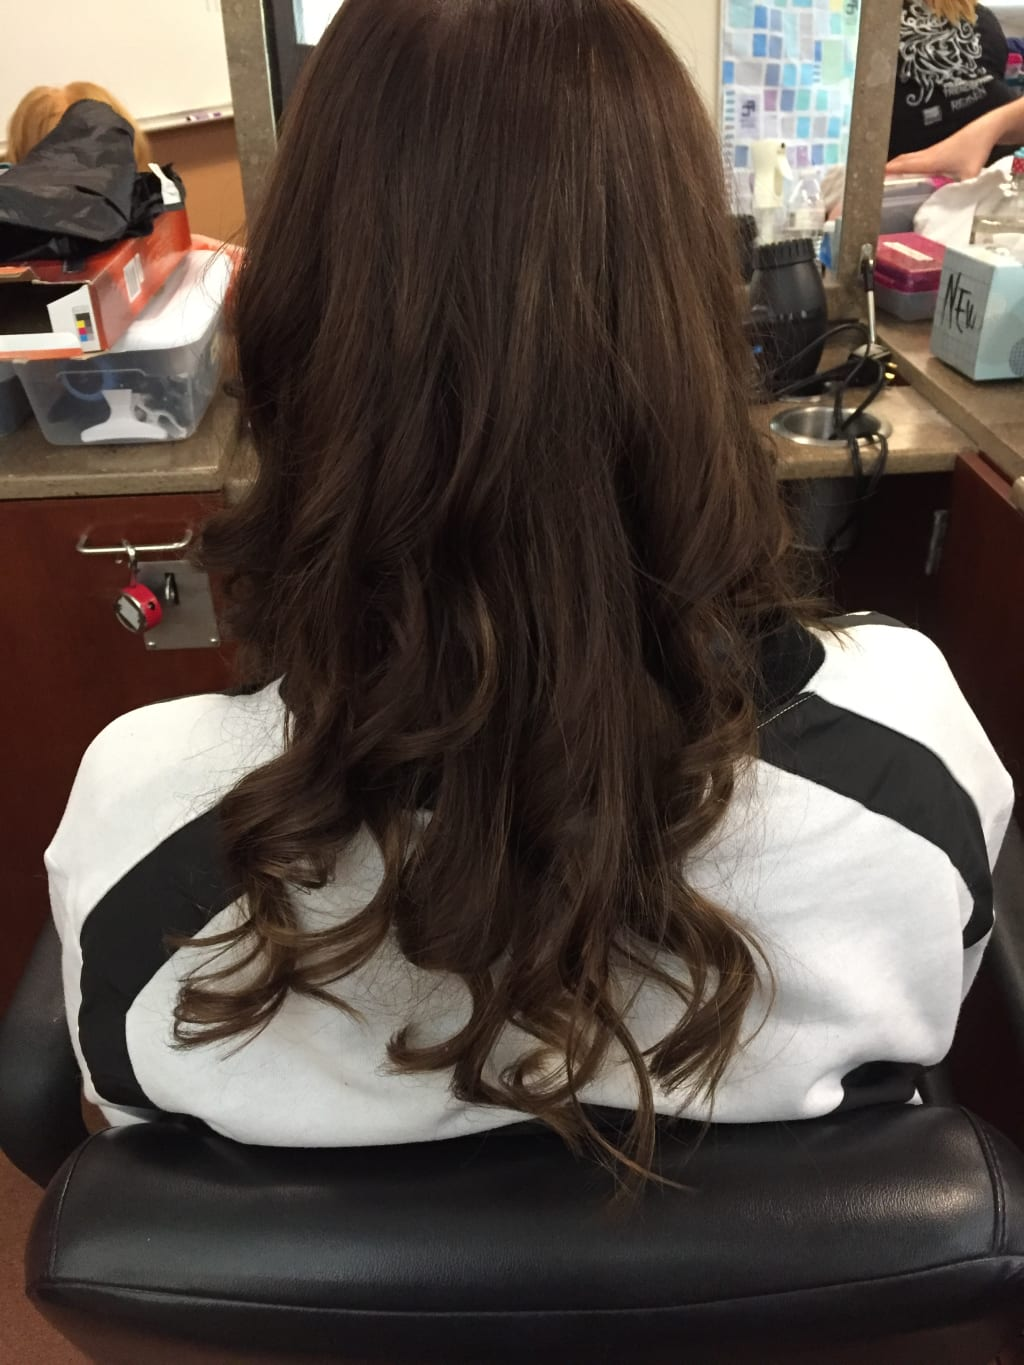 Cosmetology School: Is It Right for You?